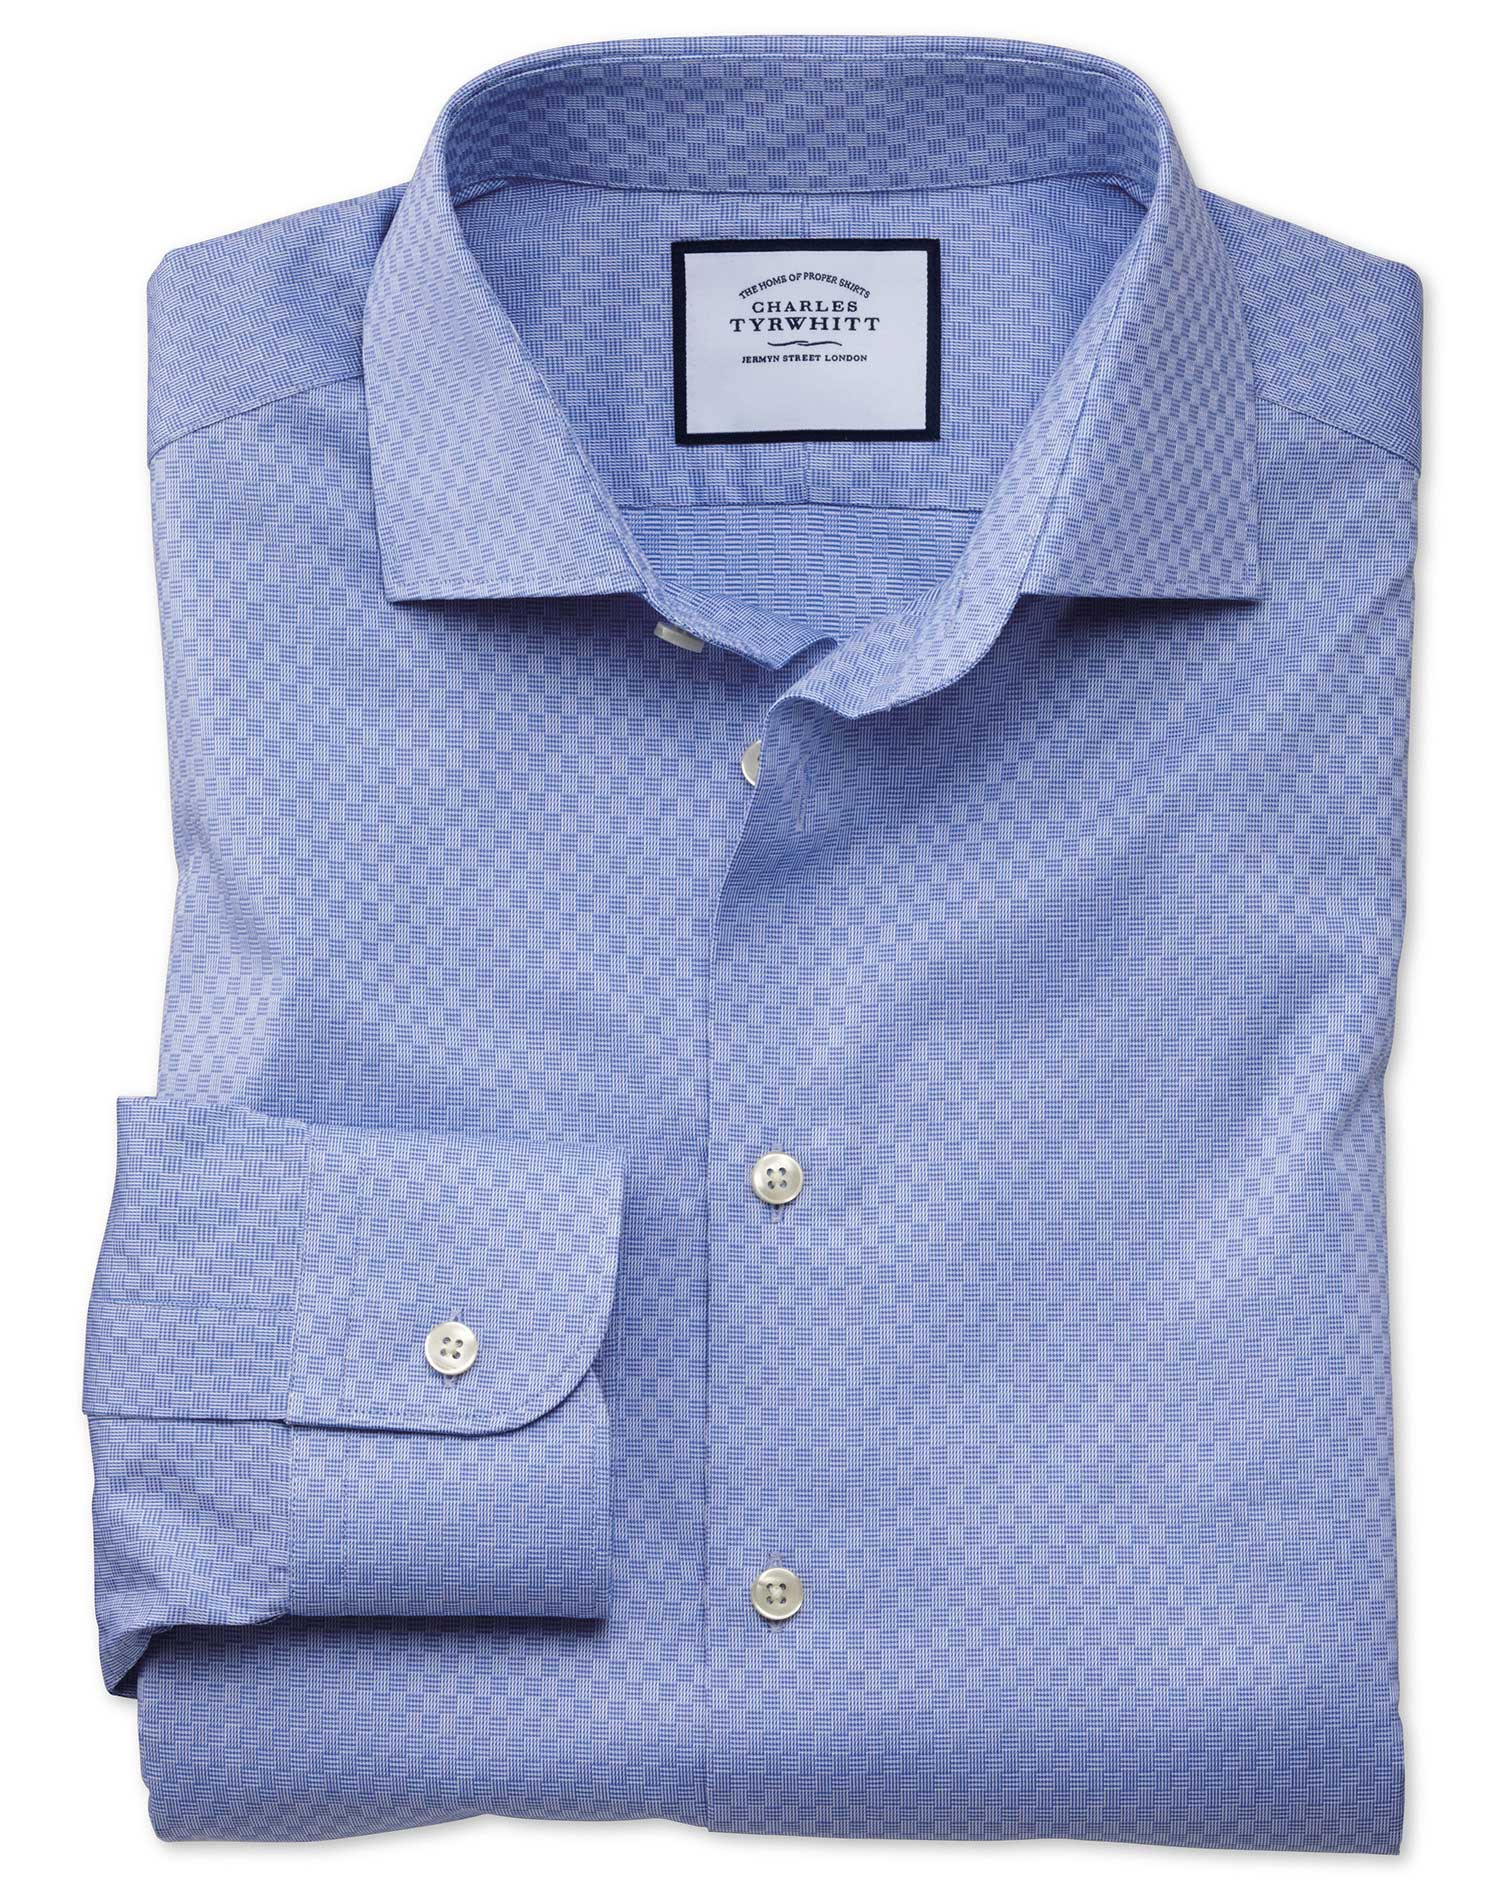 Classic Fit Business Casual Mid-Blue Square Pattern Egyptian Cotton Formal Shirt Single Cuff Size 19